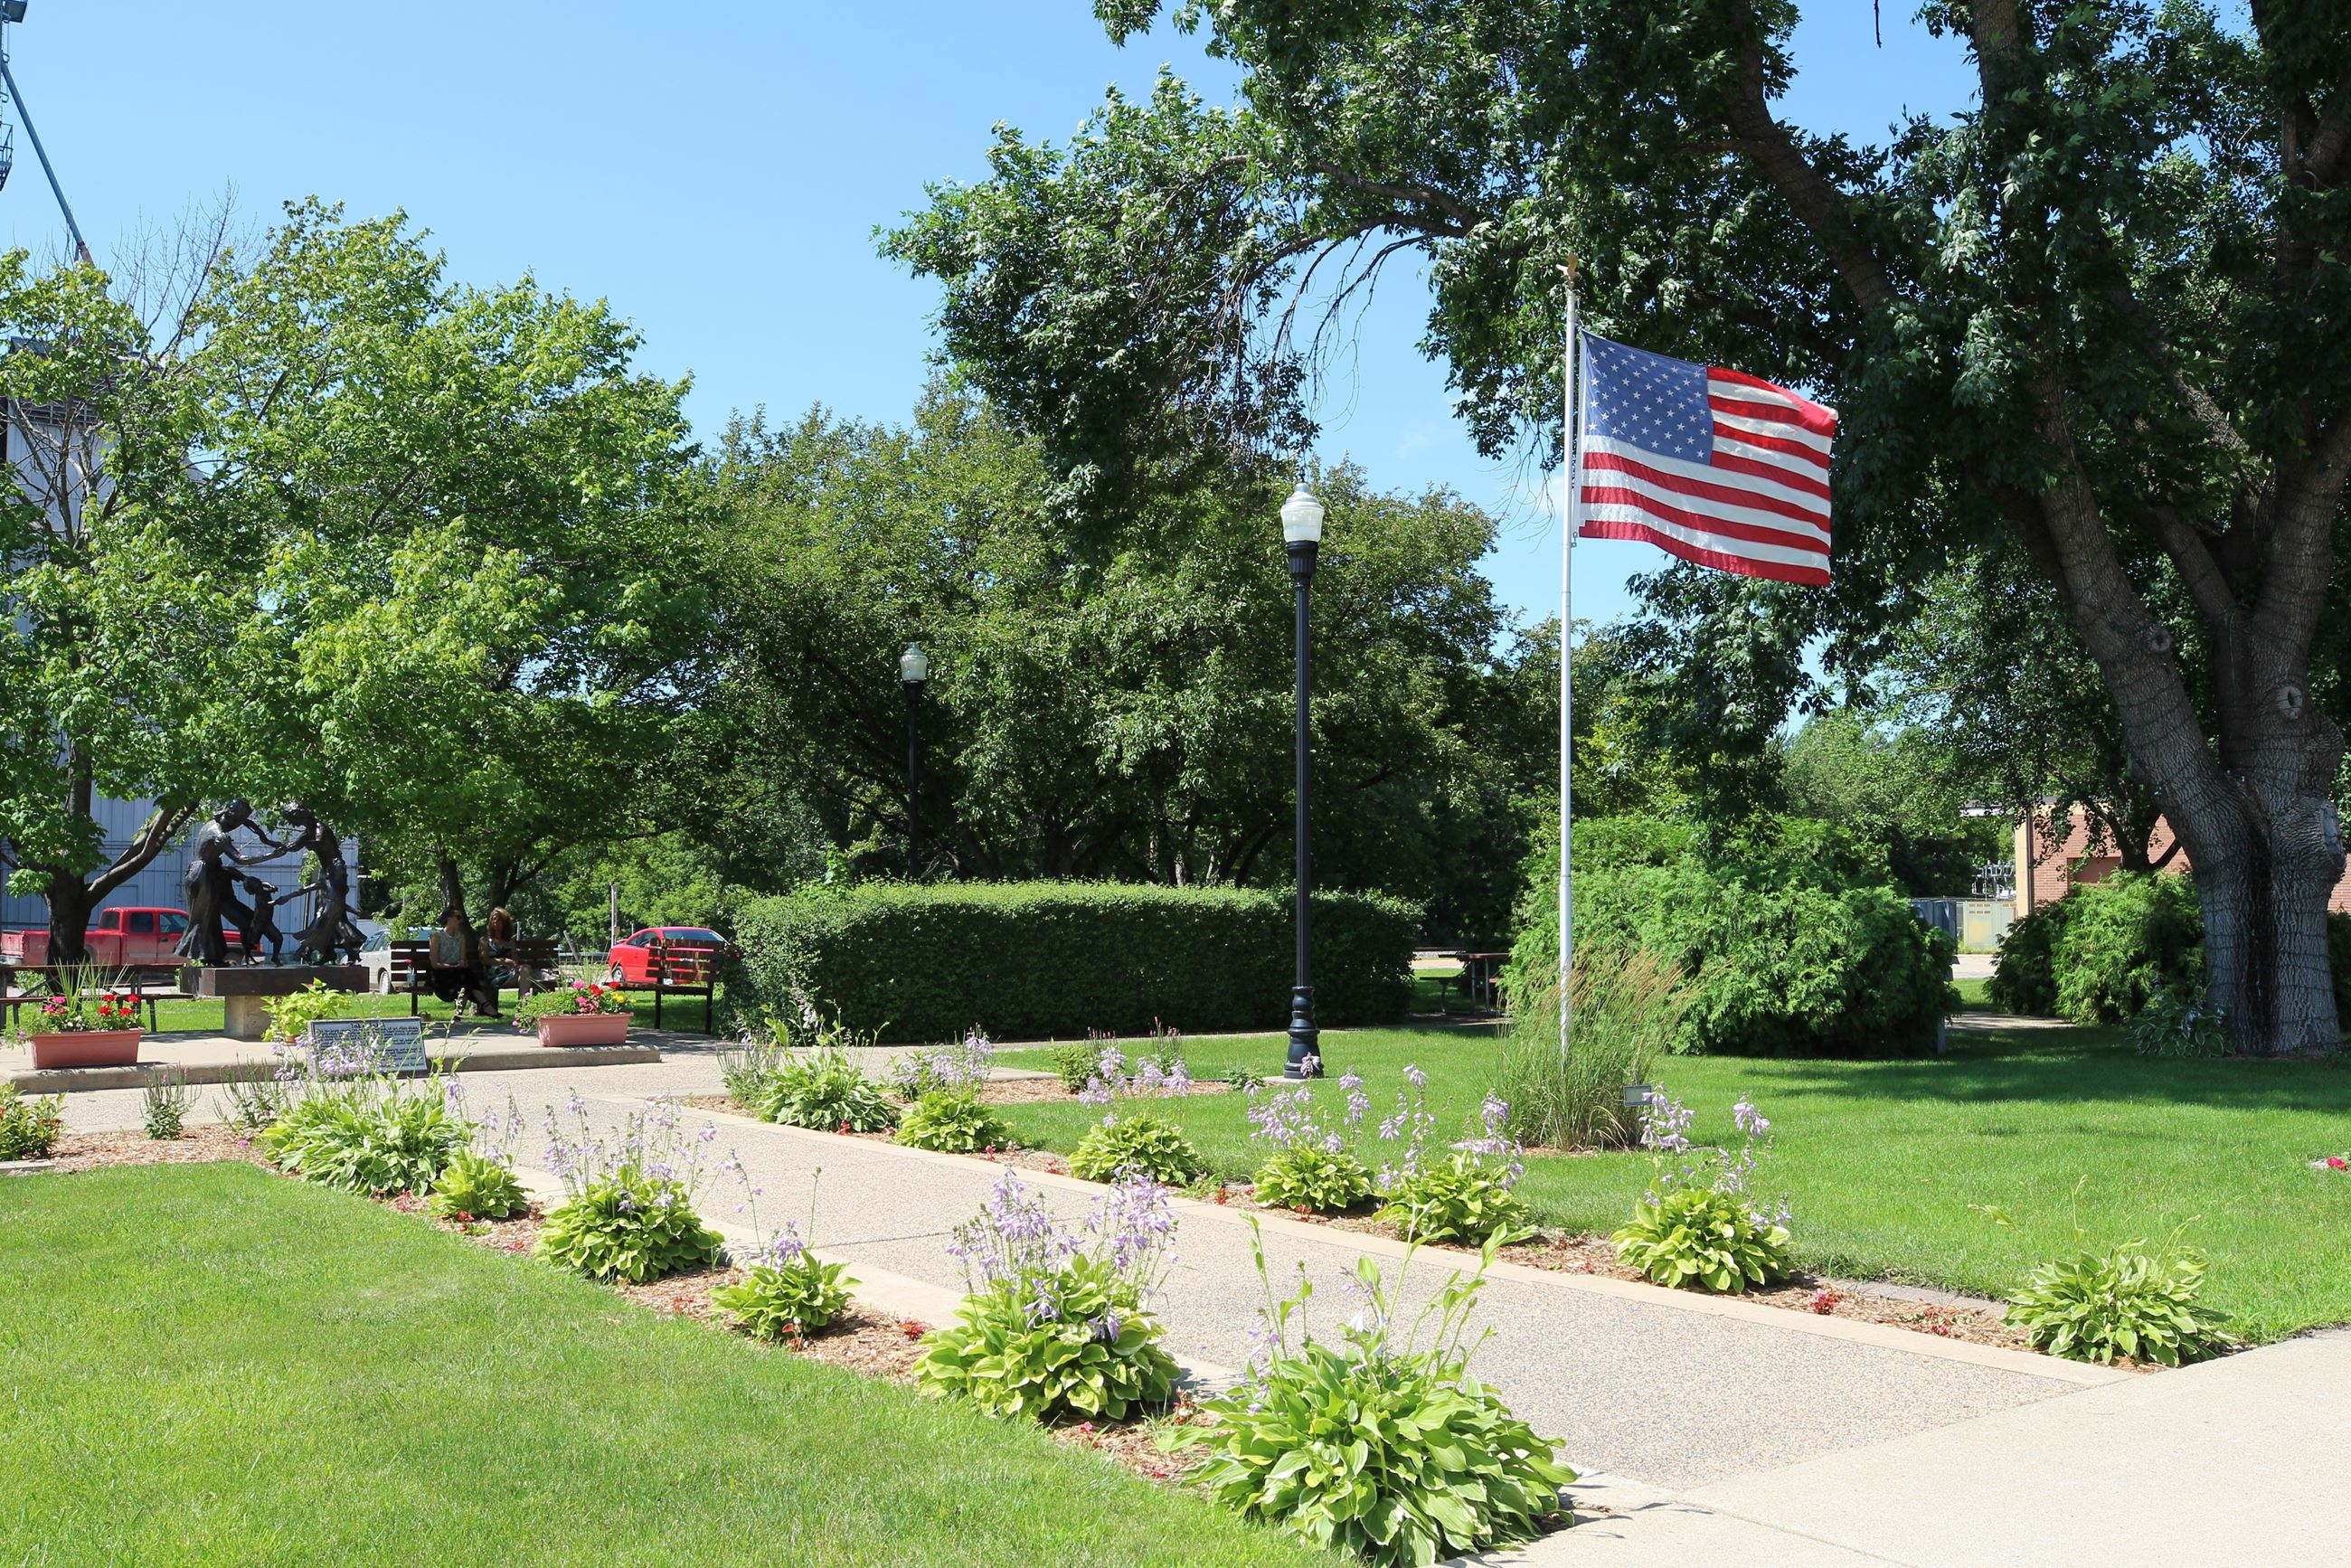 Park and American flag